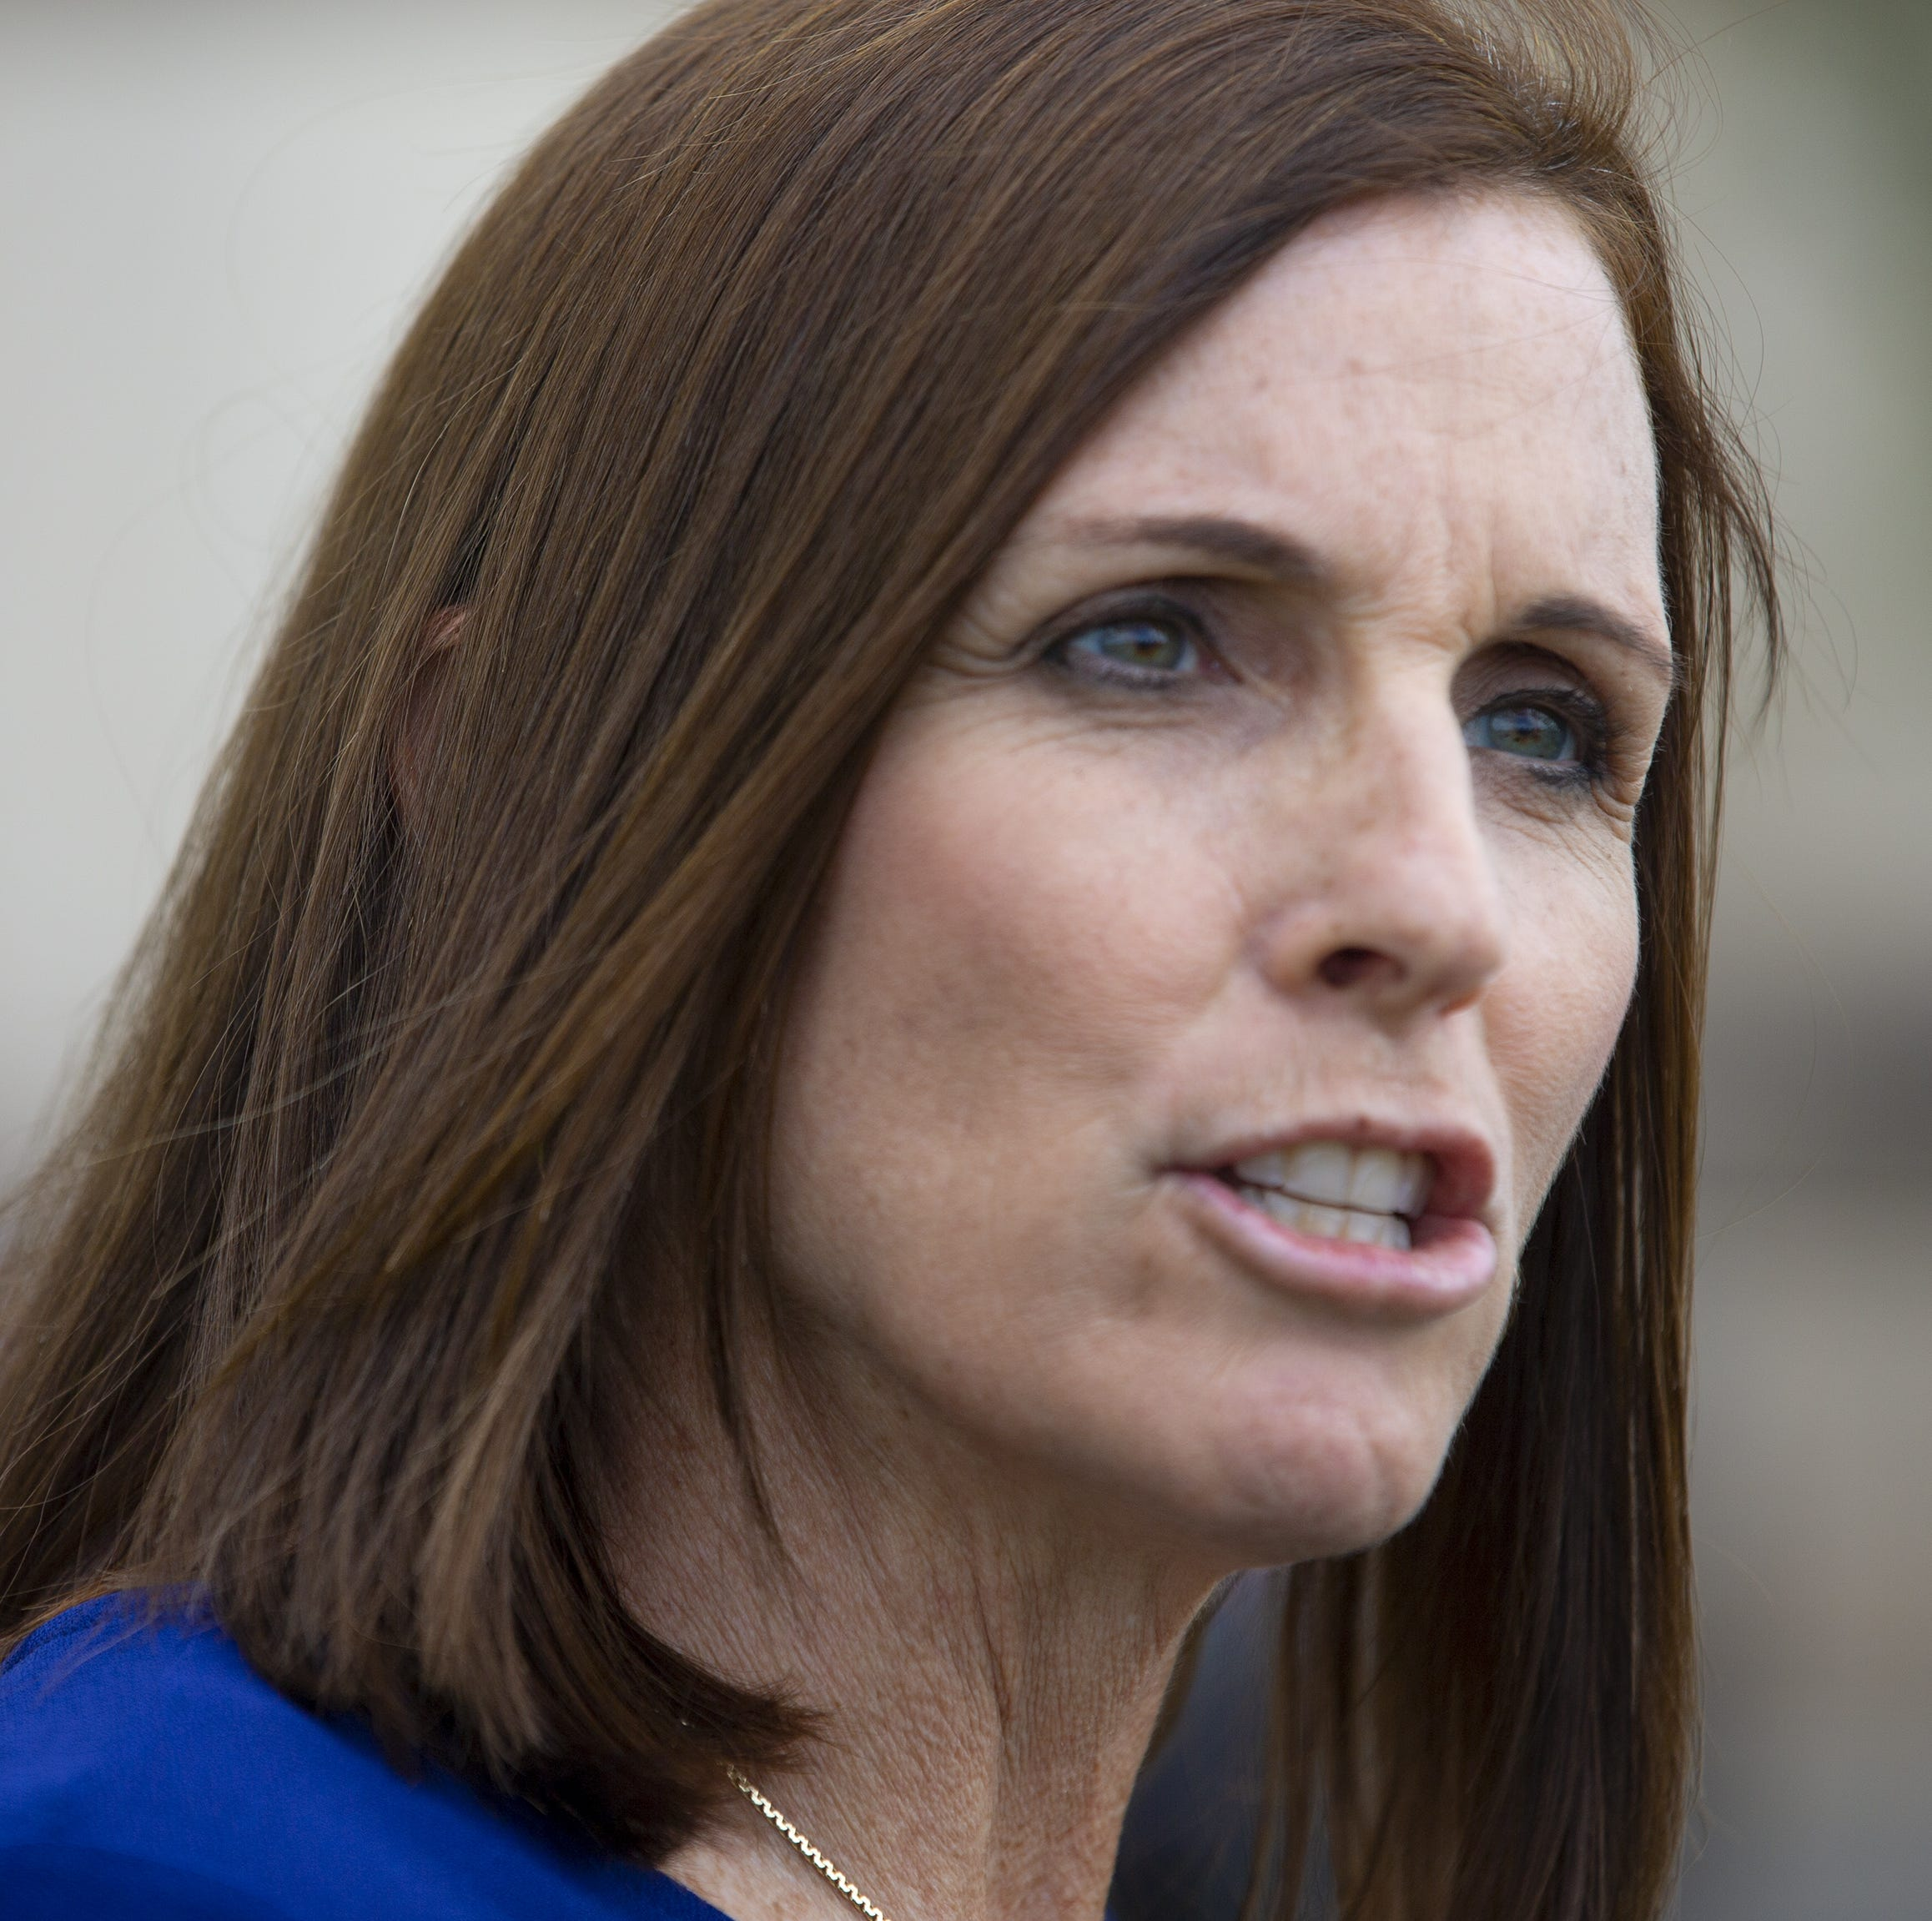 Sen. Martha McSally upset with DHS over release of migrant families